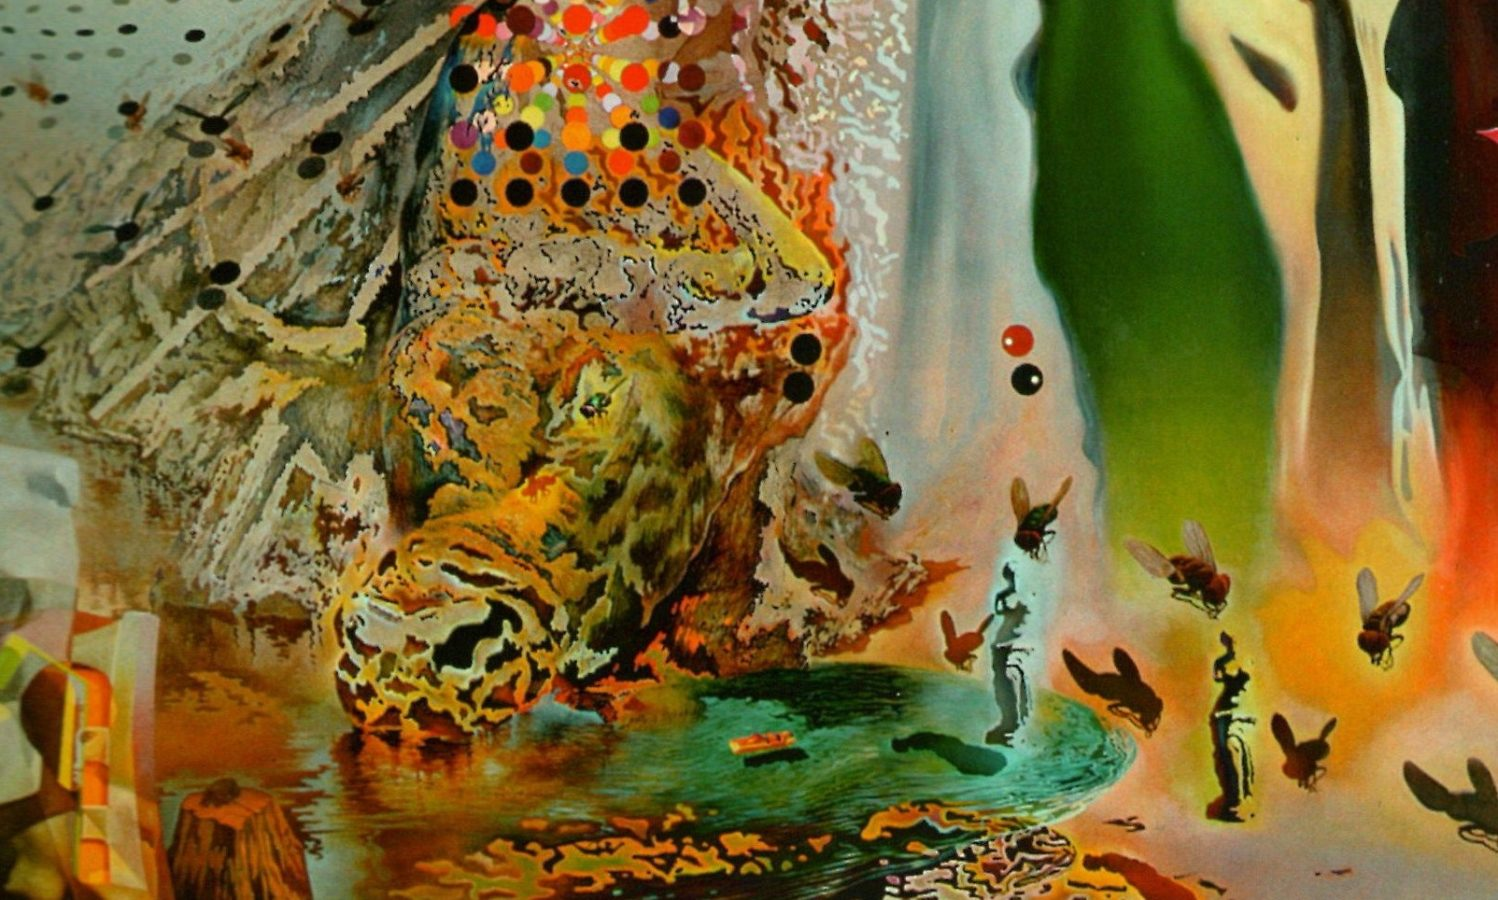 Painting Of The Week – The Hallucinogenic Toreador, Salvador Dalí